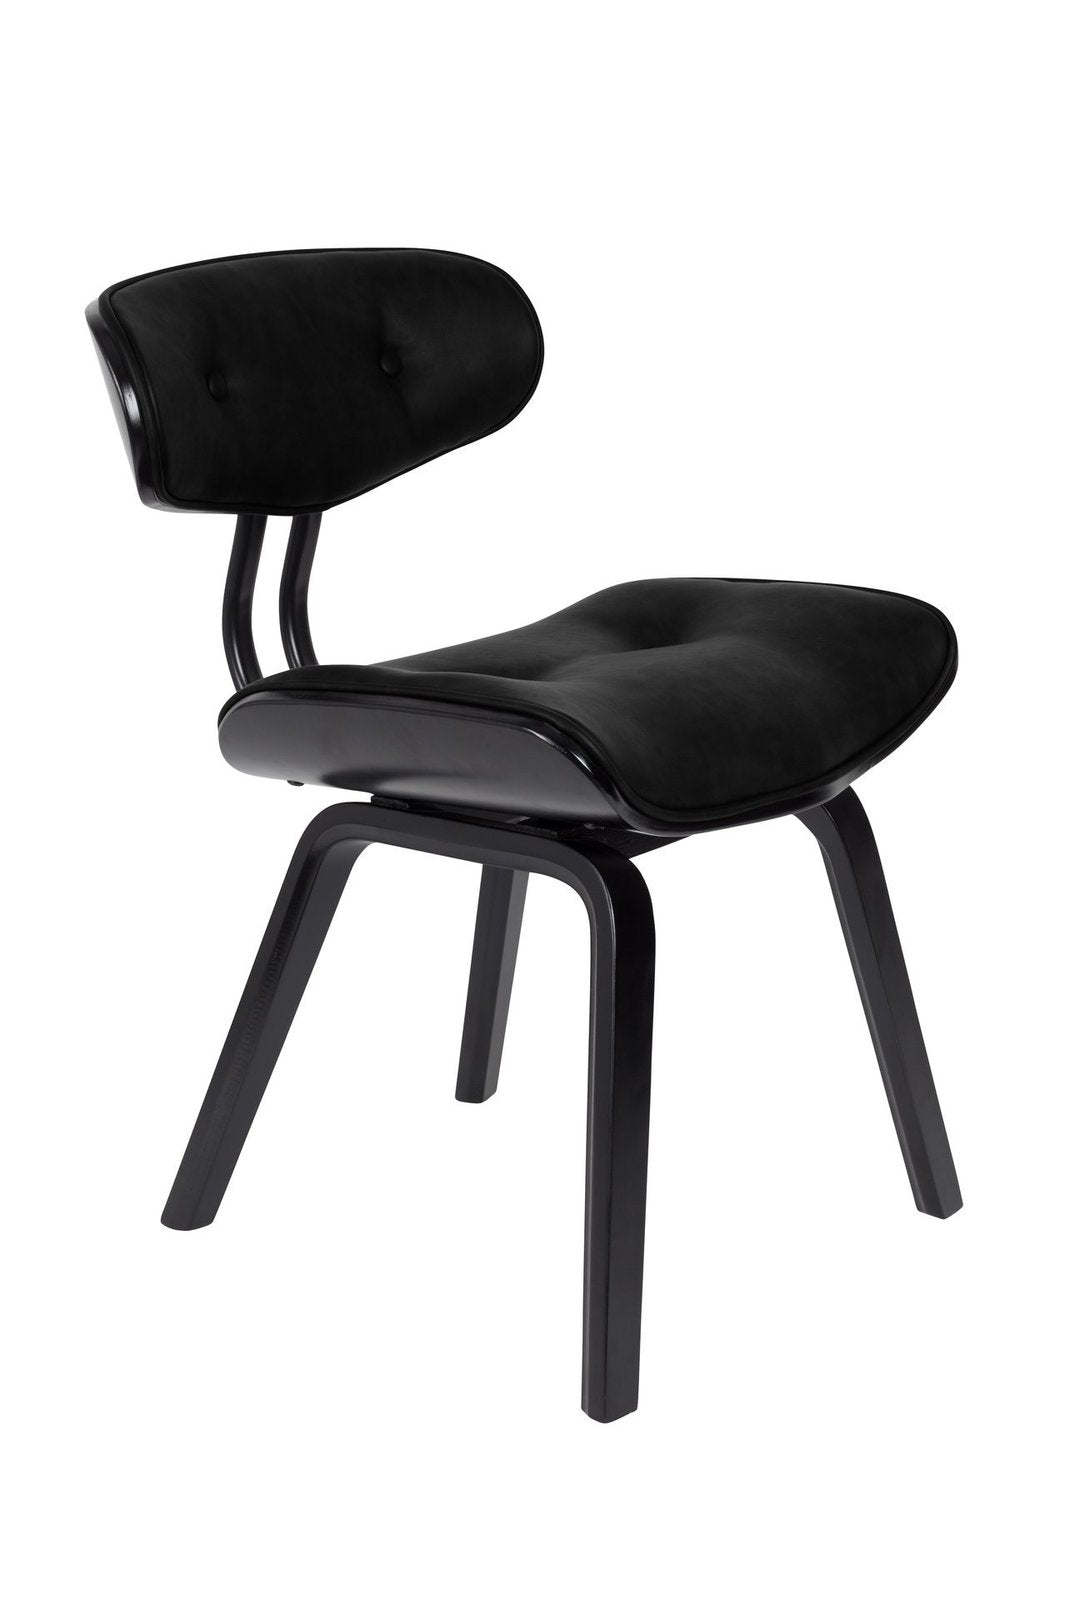 Chair Blackwood Black